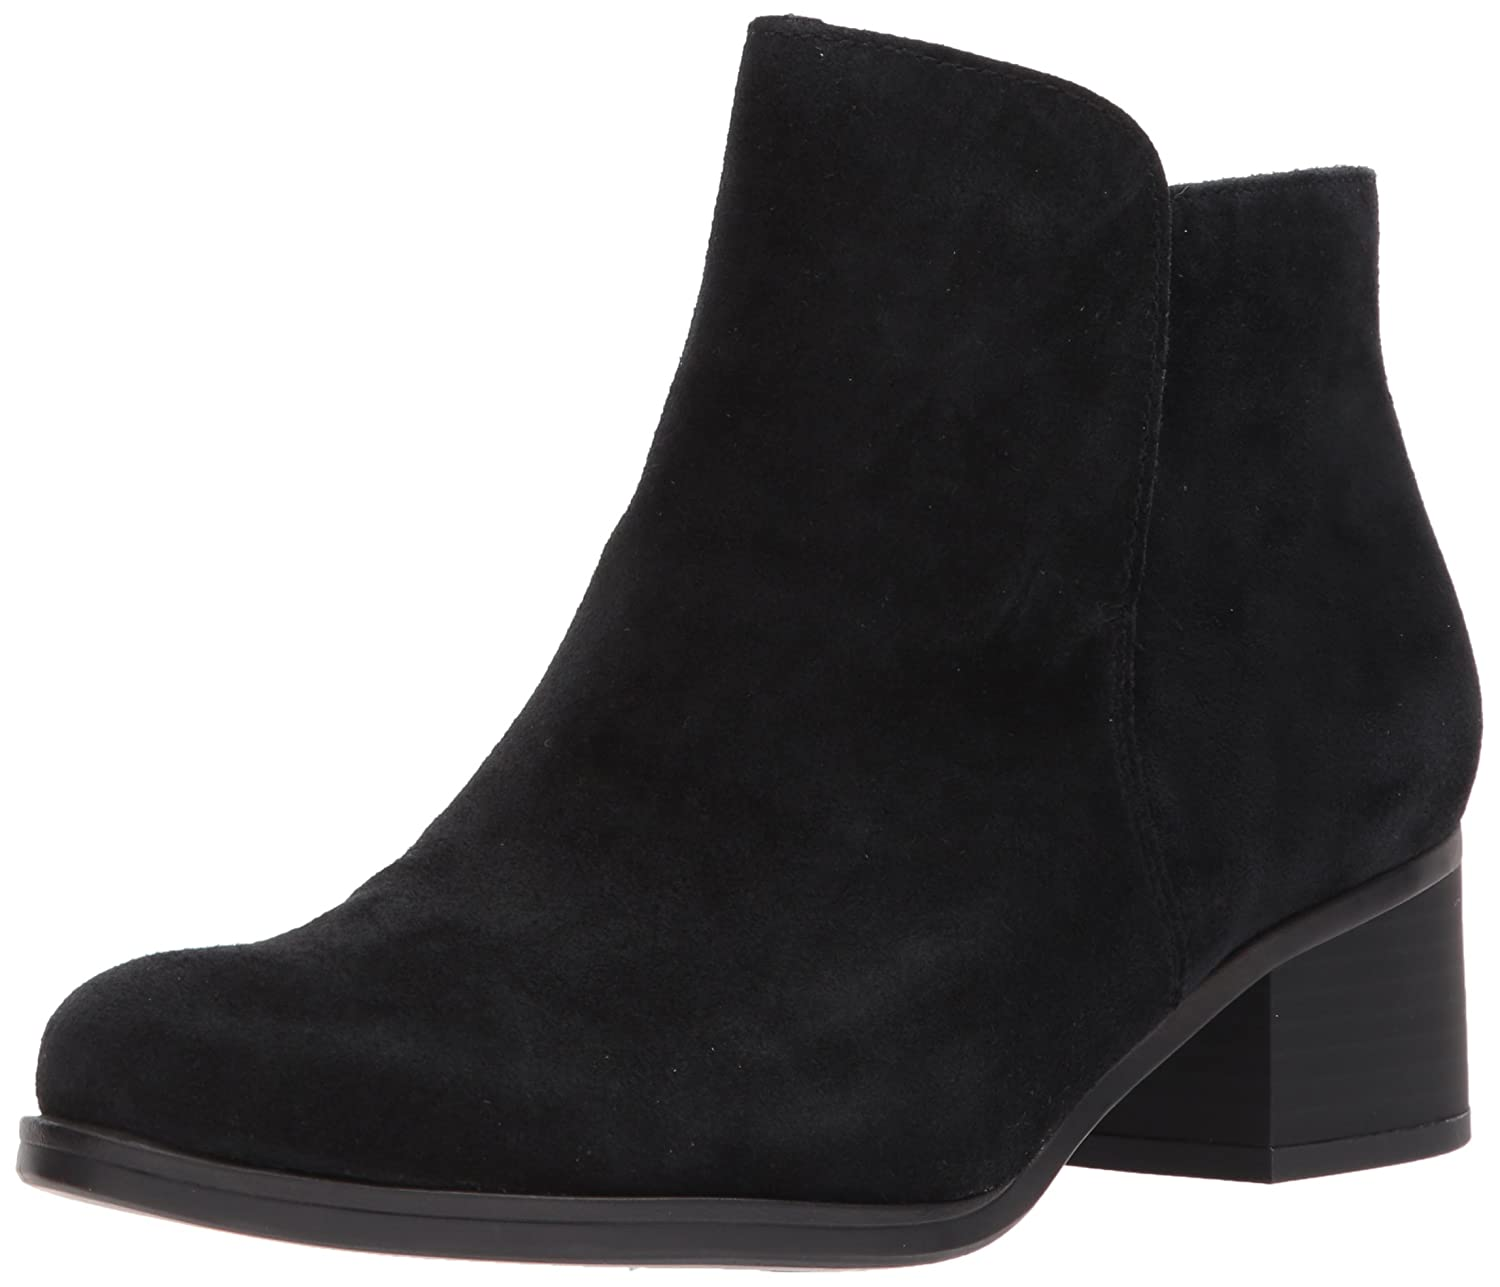 Naturalizer Women's Dawson Chelsea Boot B071NGY1SV 9 B(M) US|Black Suede